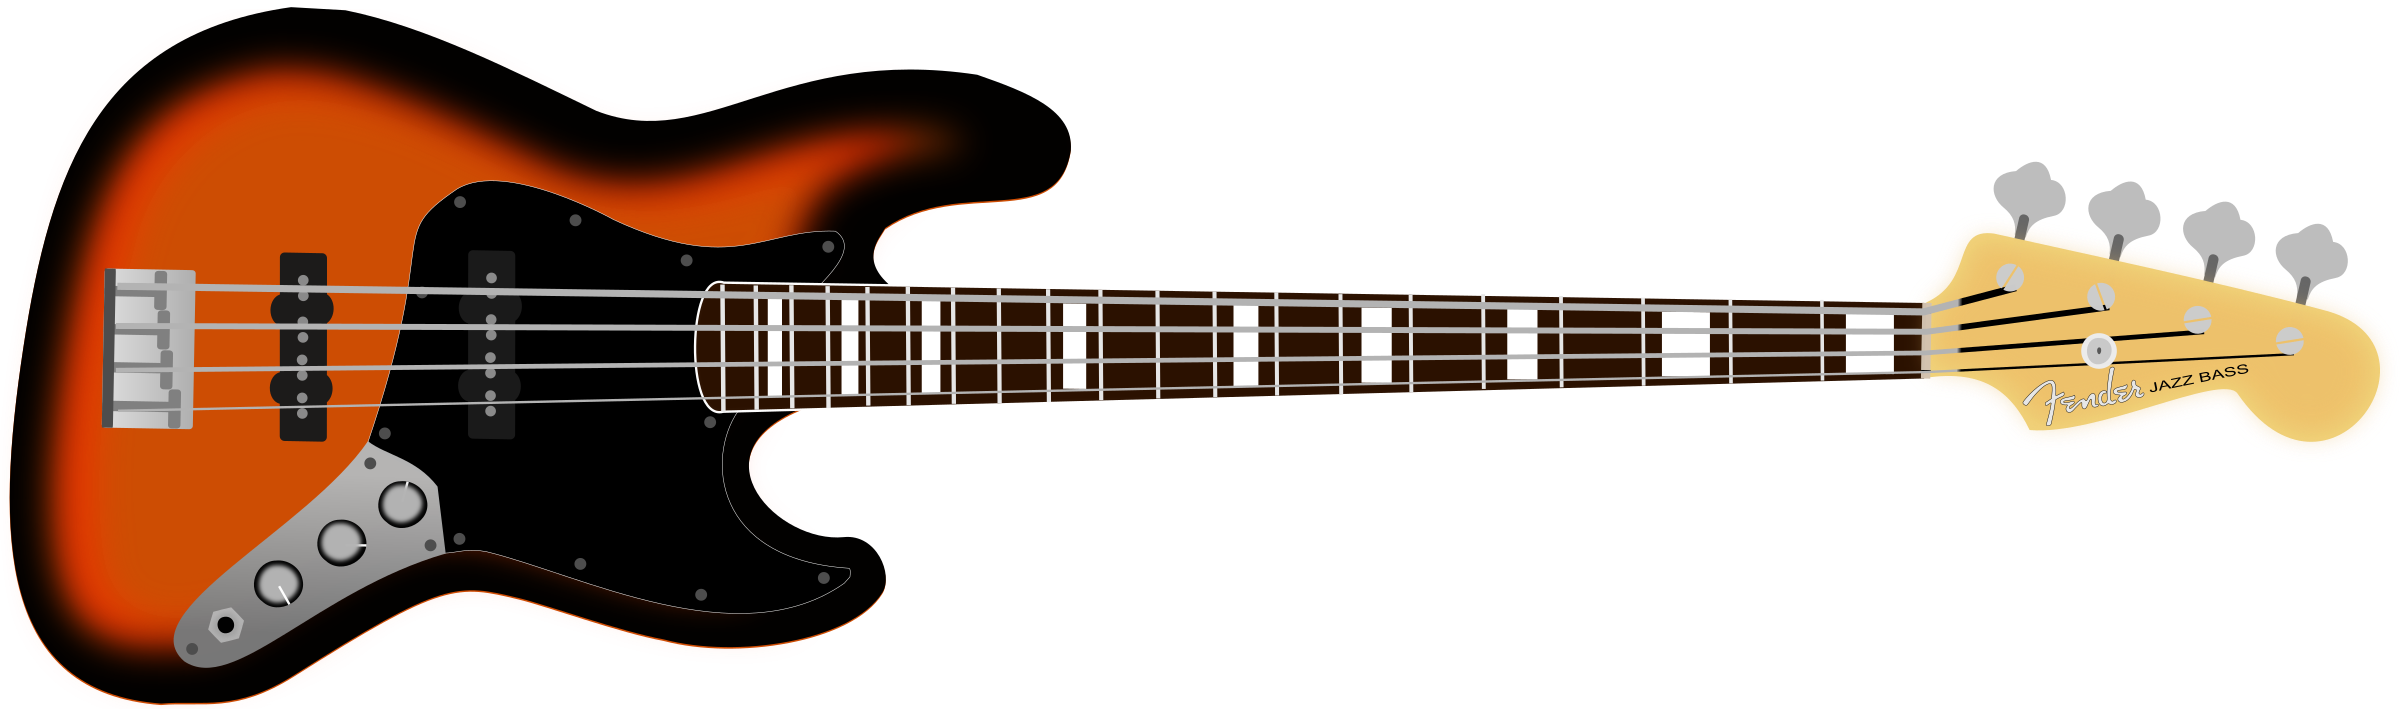 Fender Jazz Bass Classic 70 by guislip